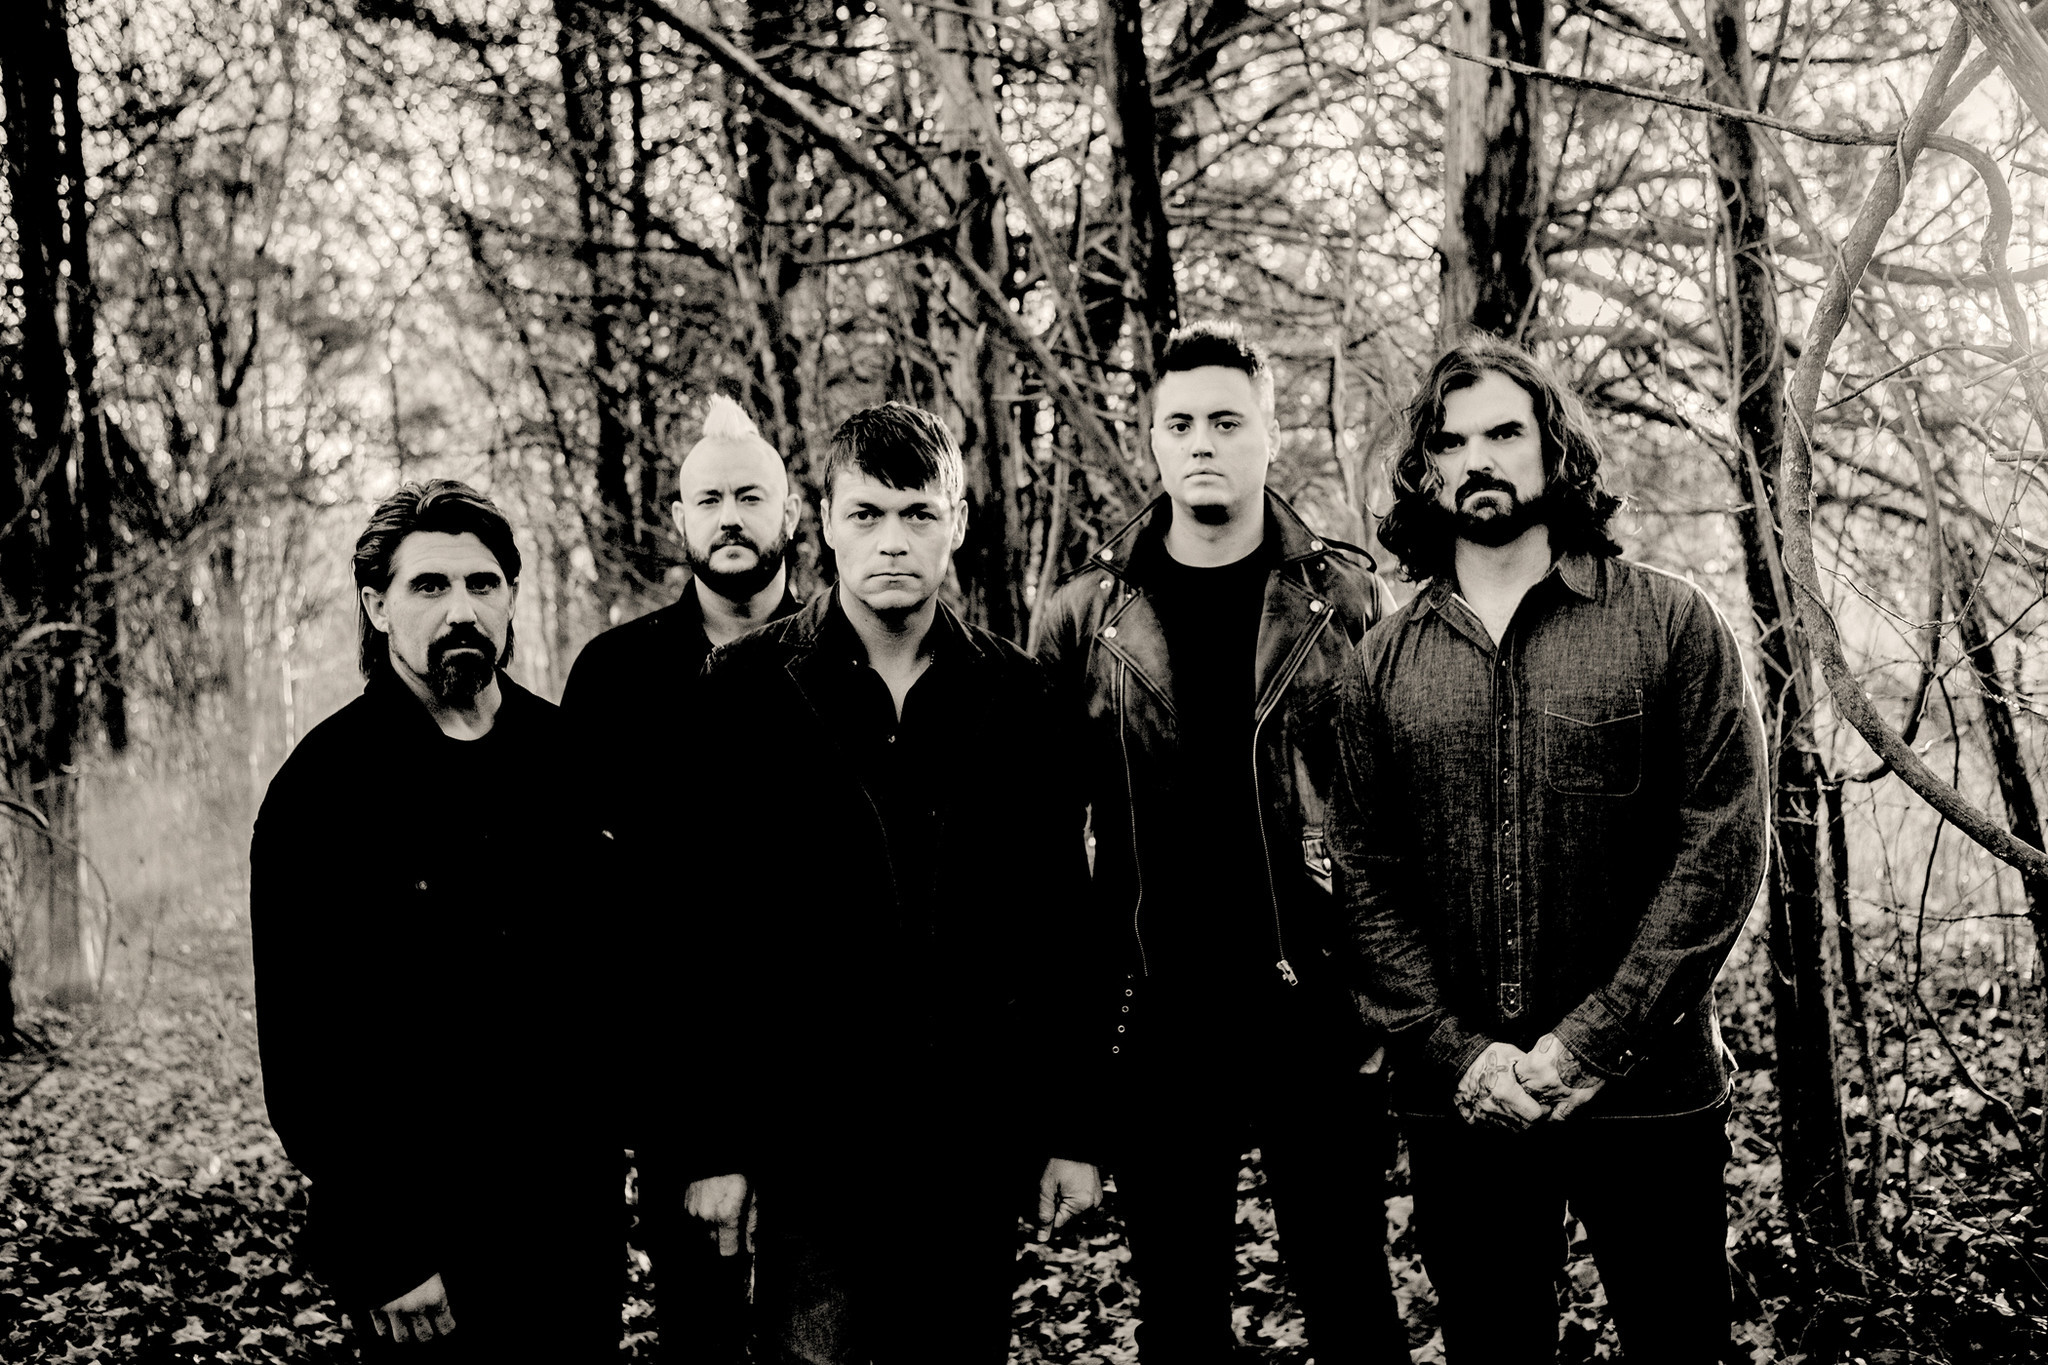 3 Doors Down's Brad Arnold Speaks About Band's New Album